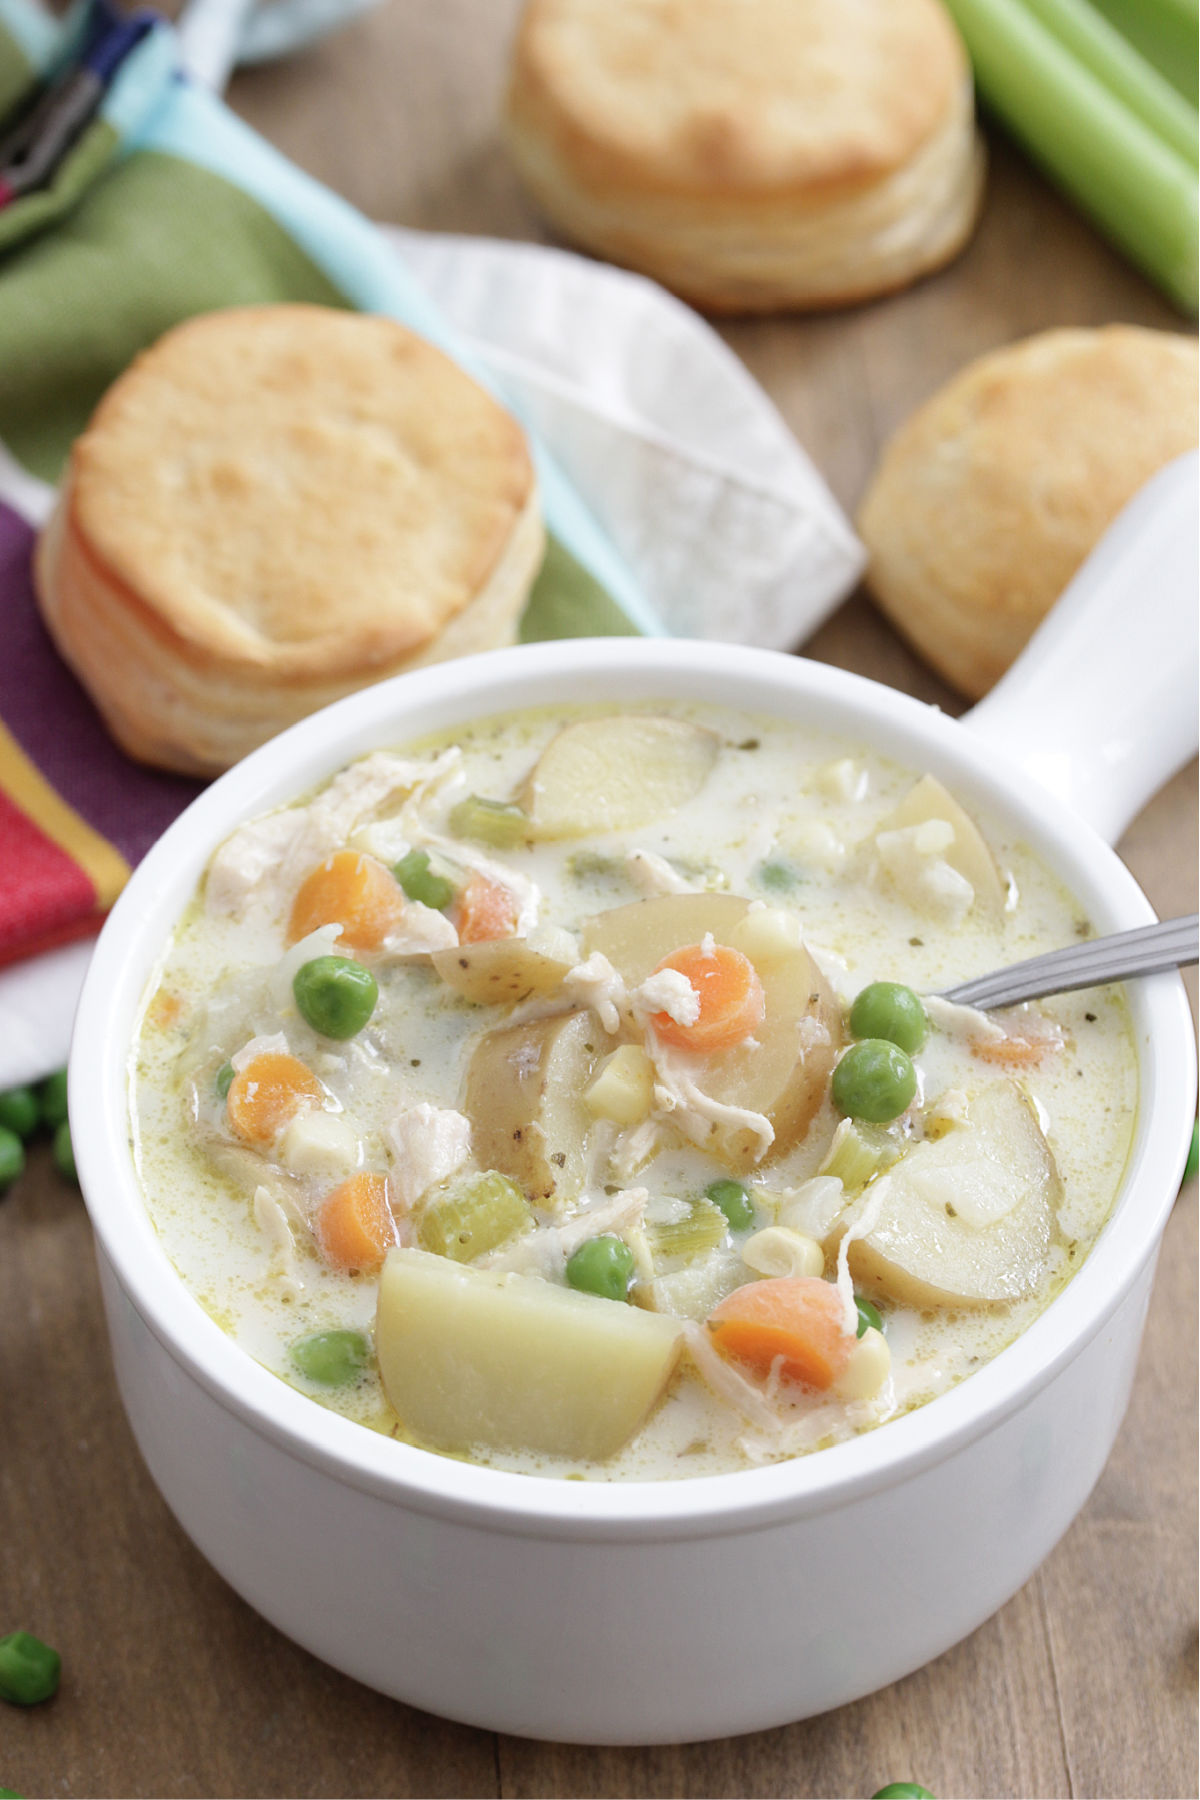 Chicken Pot Pie Soup in a white bowl with biscuits